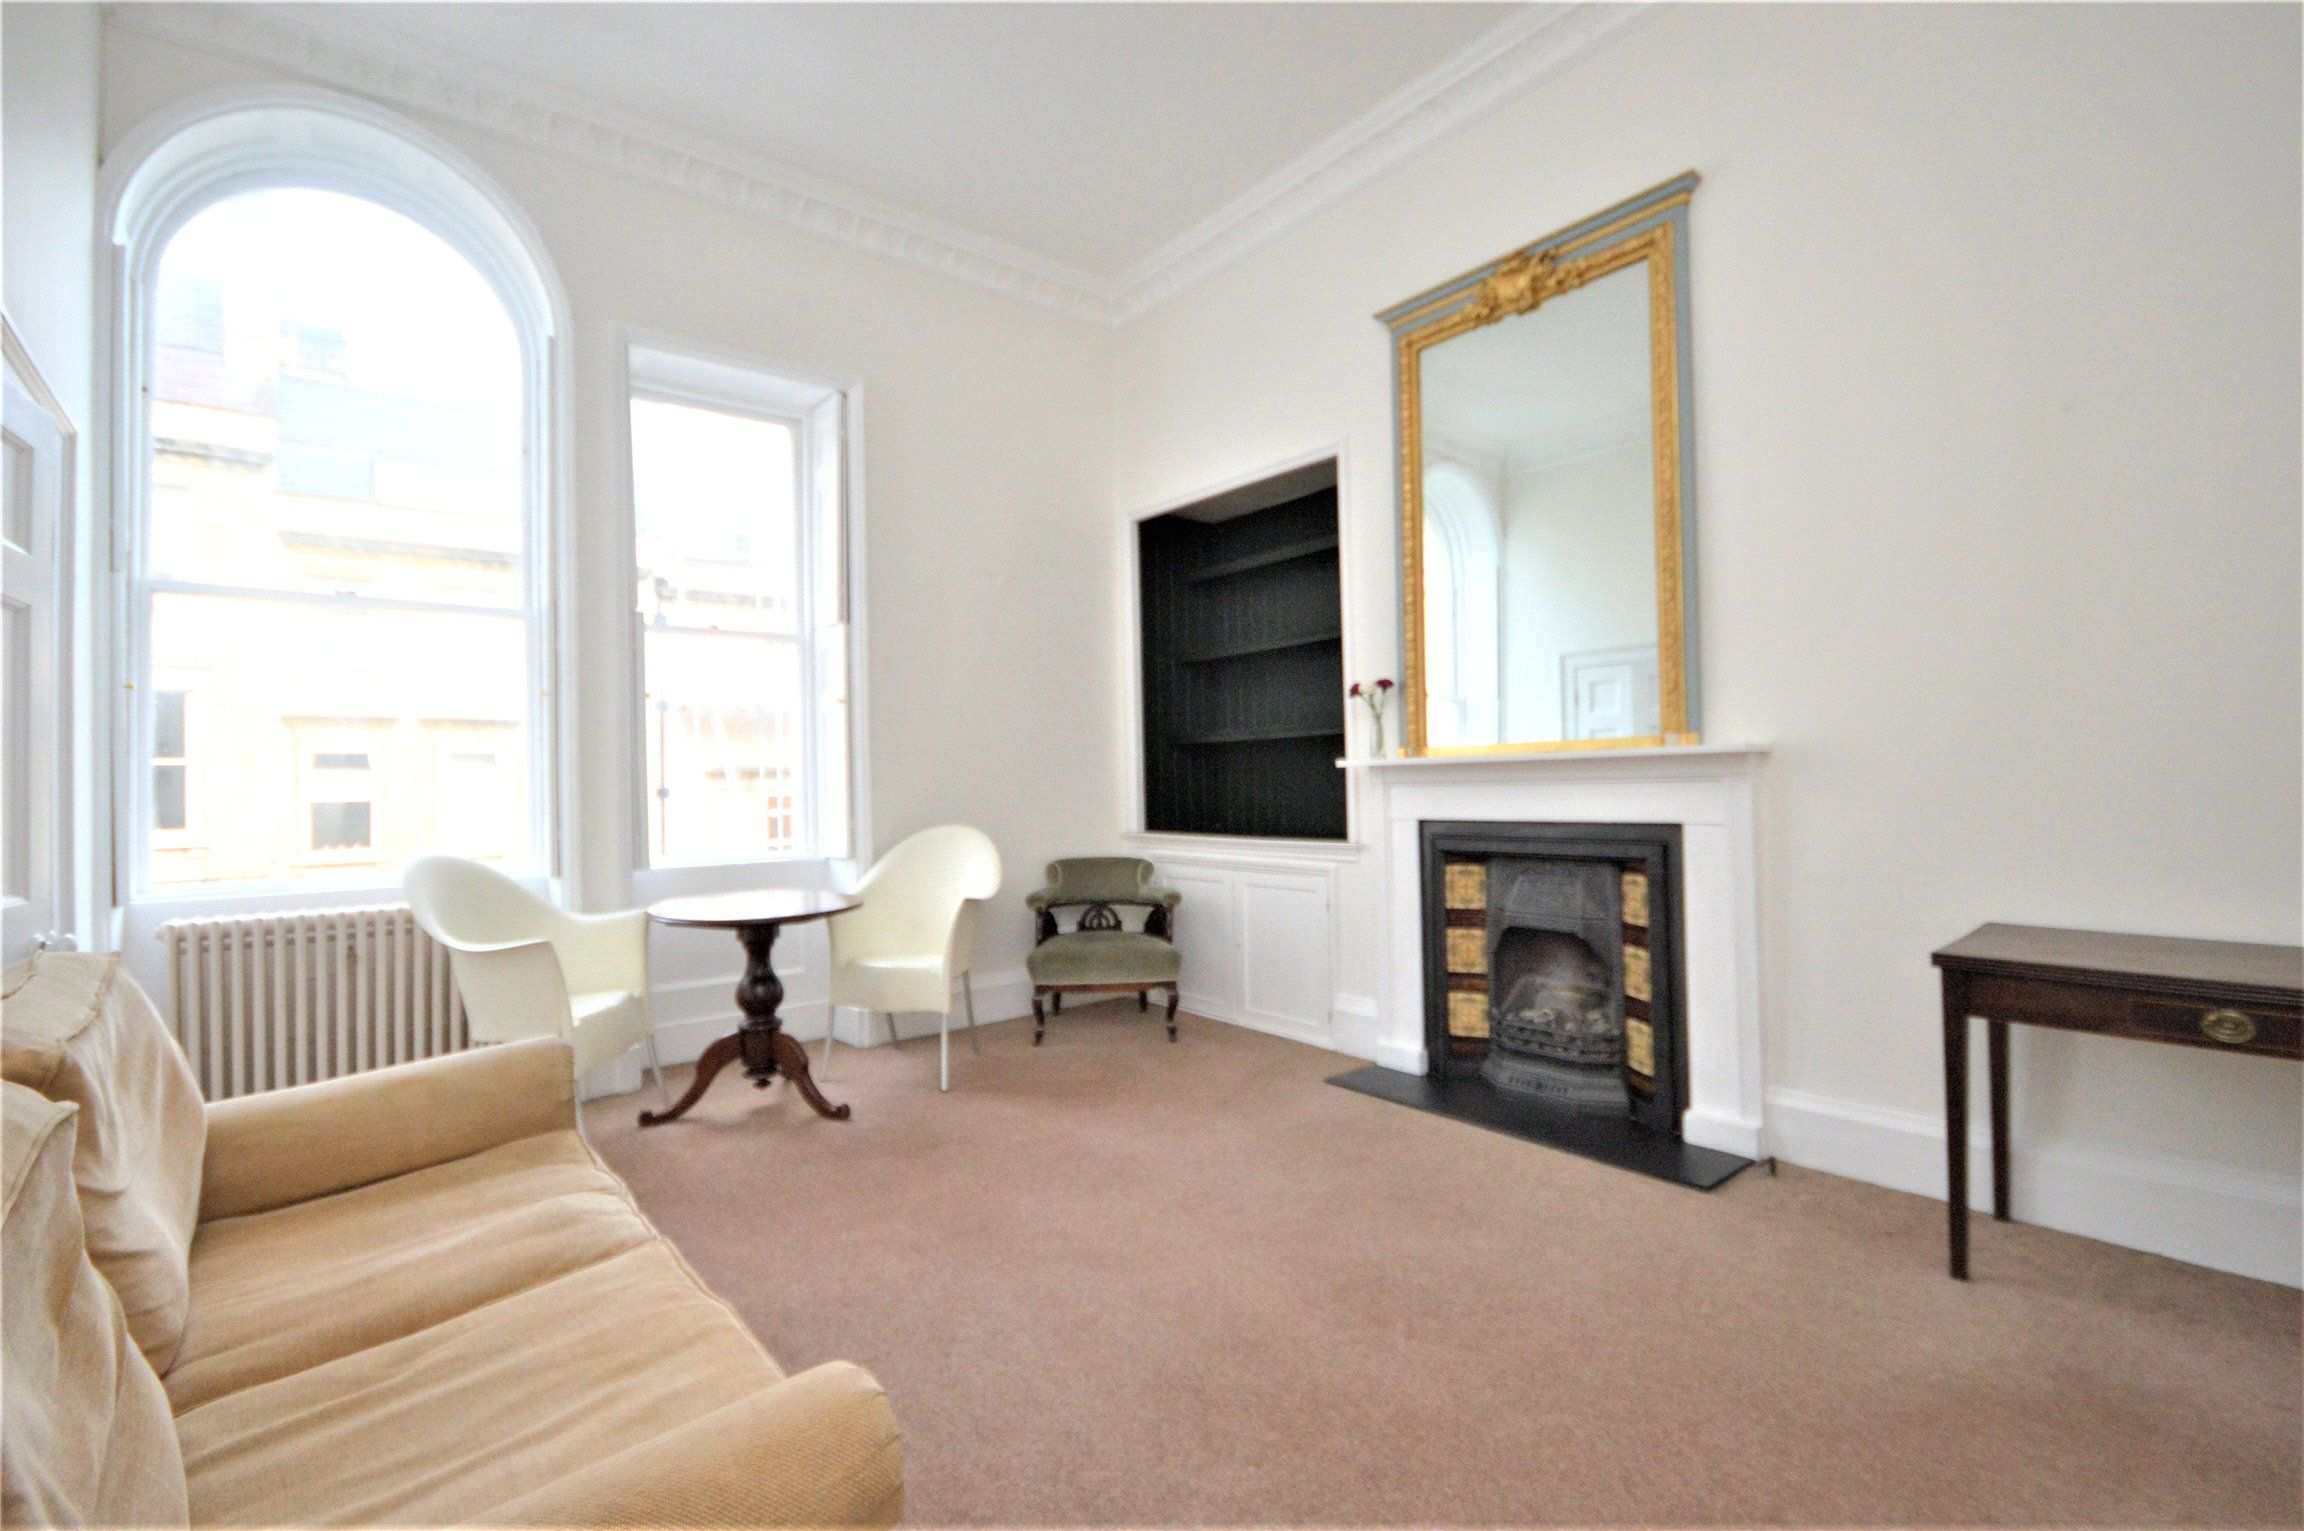 Property photo 1 of 11. Living Room